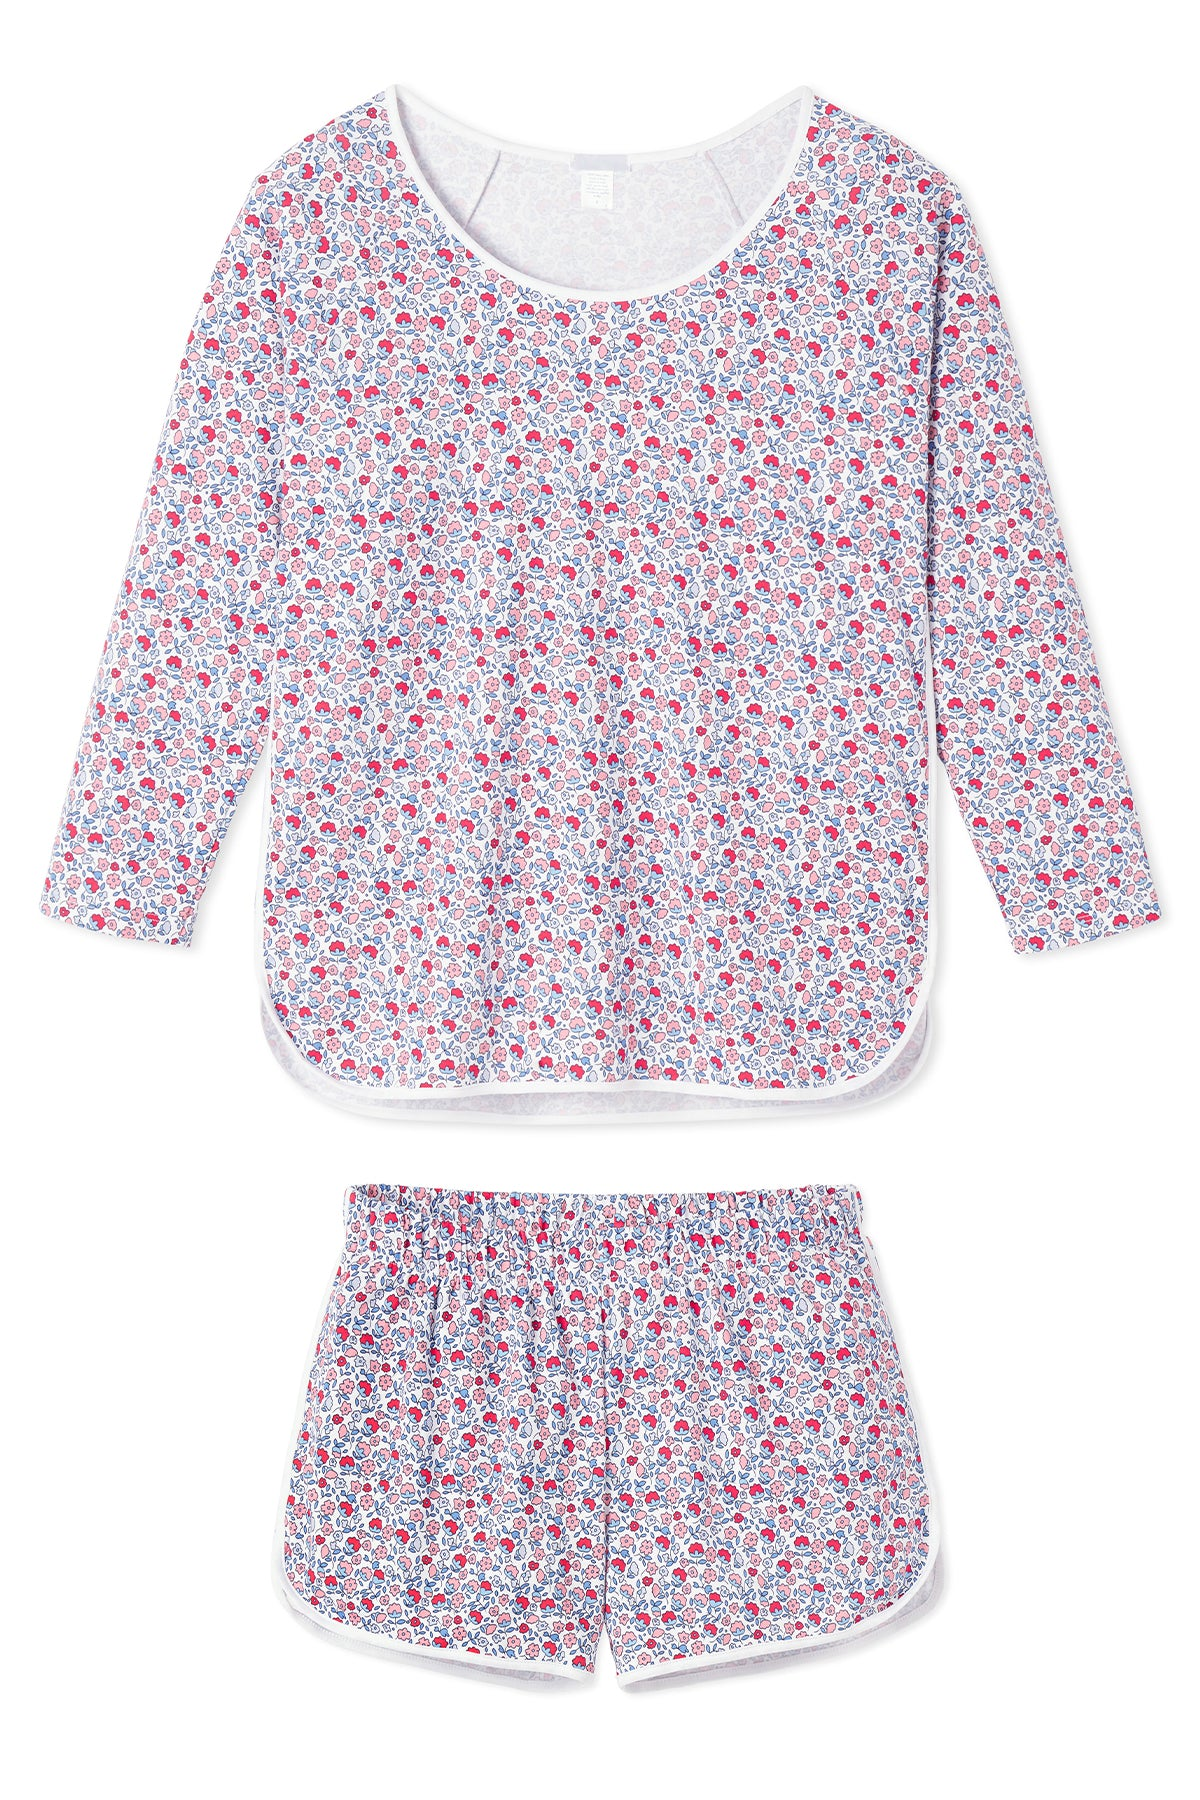 minnow x LAKE Pima Long-Short Set in Americana Floral